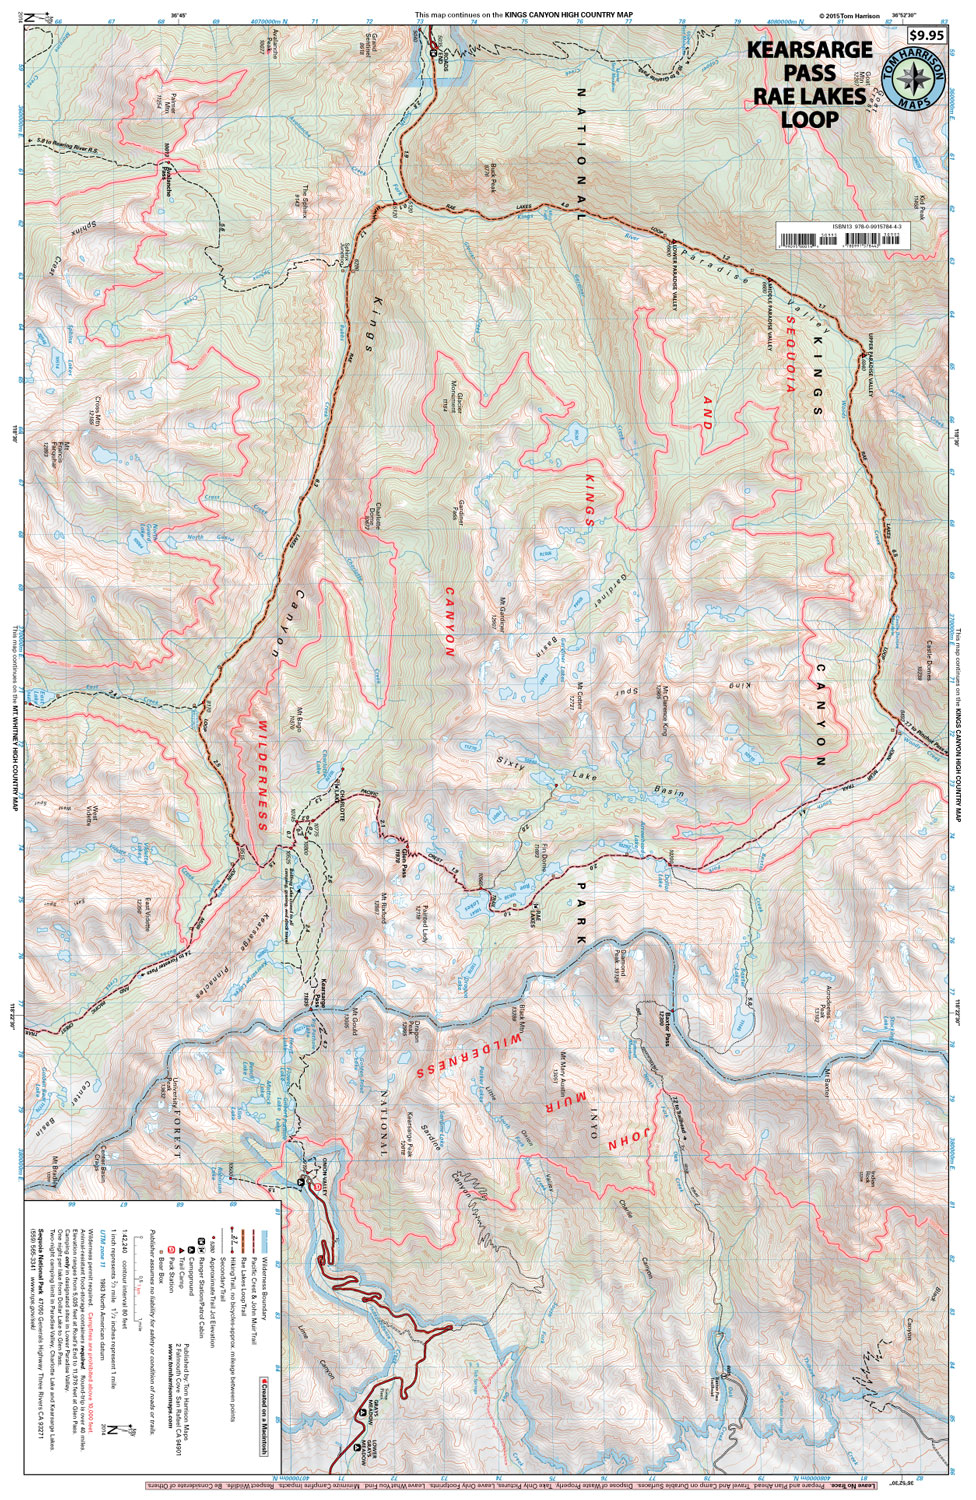 kearsarge . kearsarge passrae lakes loop – tom harrison maps